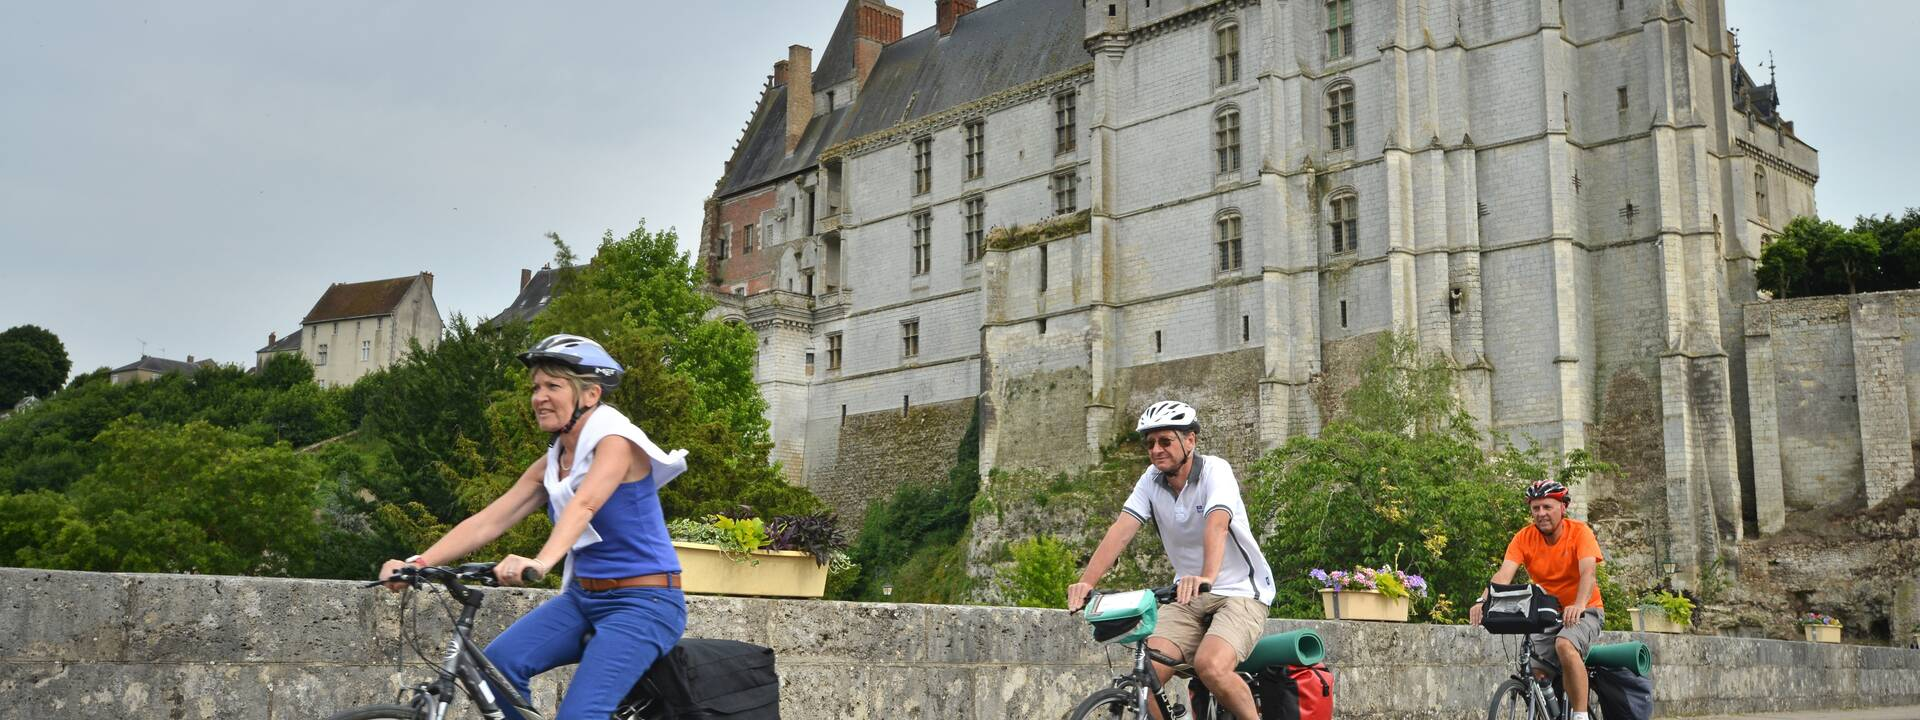 Cyclists in front of the château